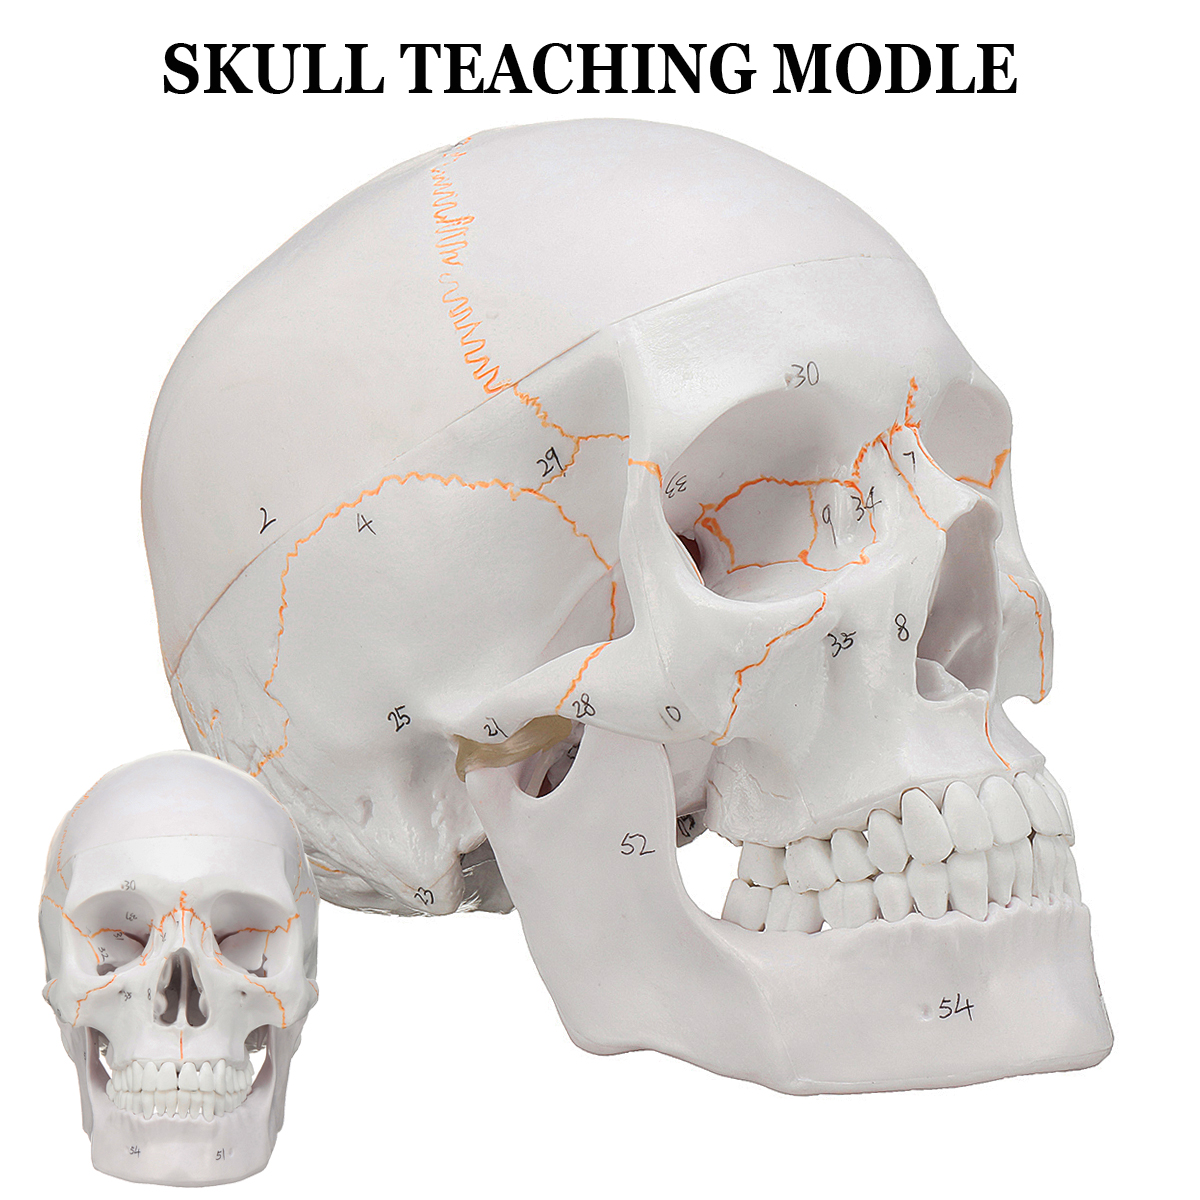 Life Size Human Anatomical Anatomy Head Skeleton Skull Teaching Medical Model Precise